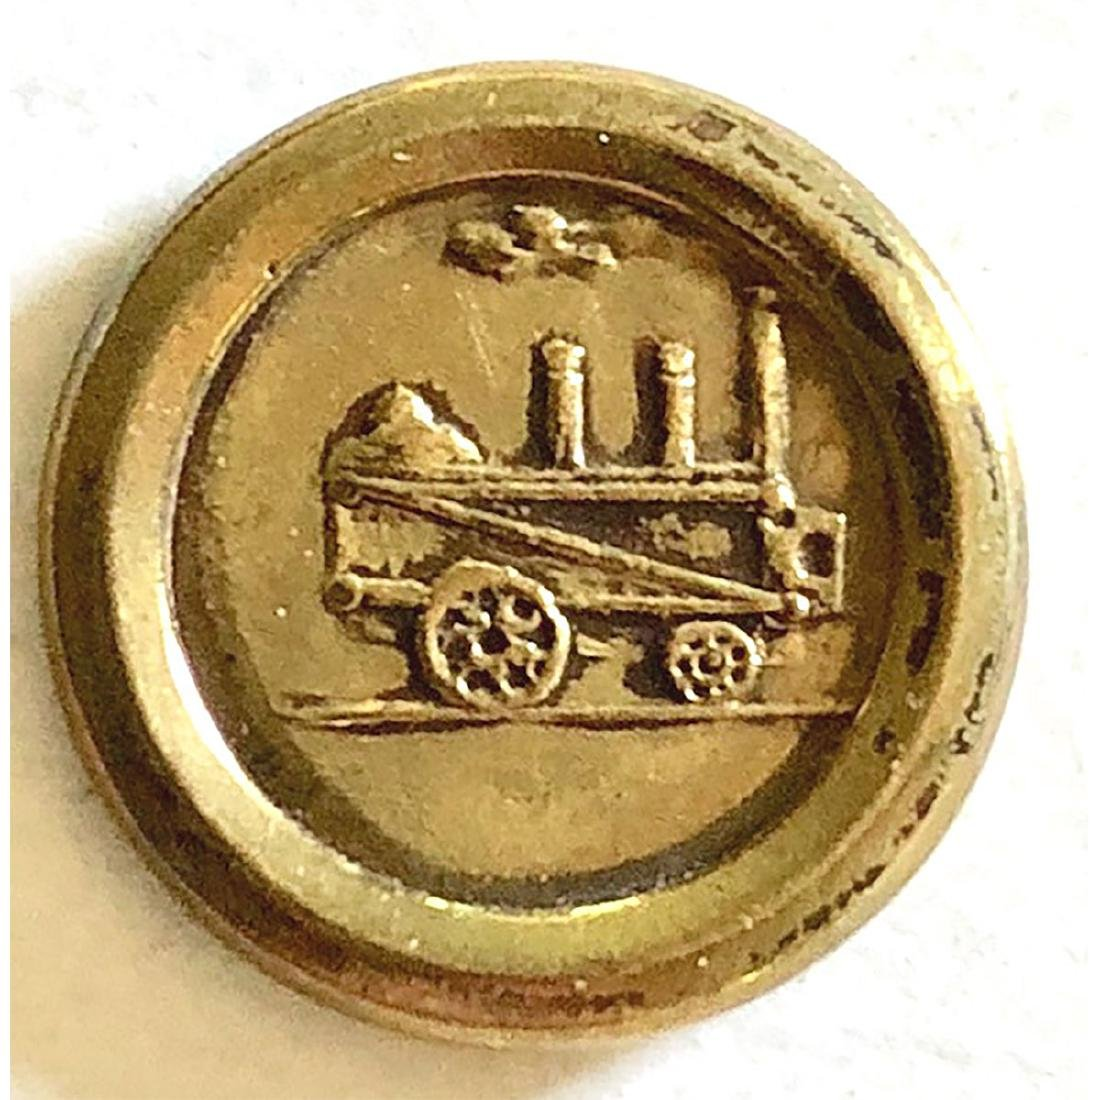 2 JACKSONIAN BUTTONS INCL. TRAIN & GOAT OR HORSE